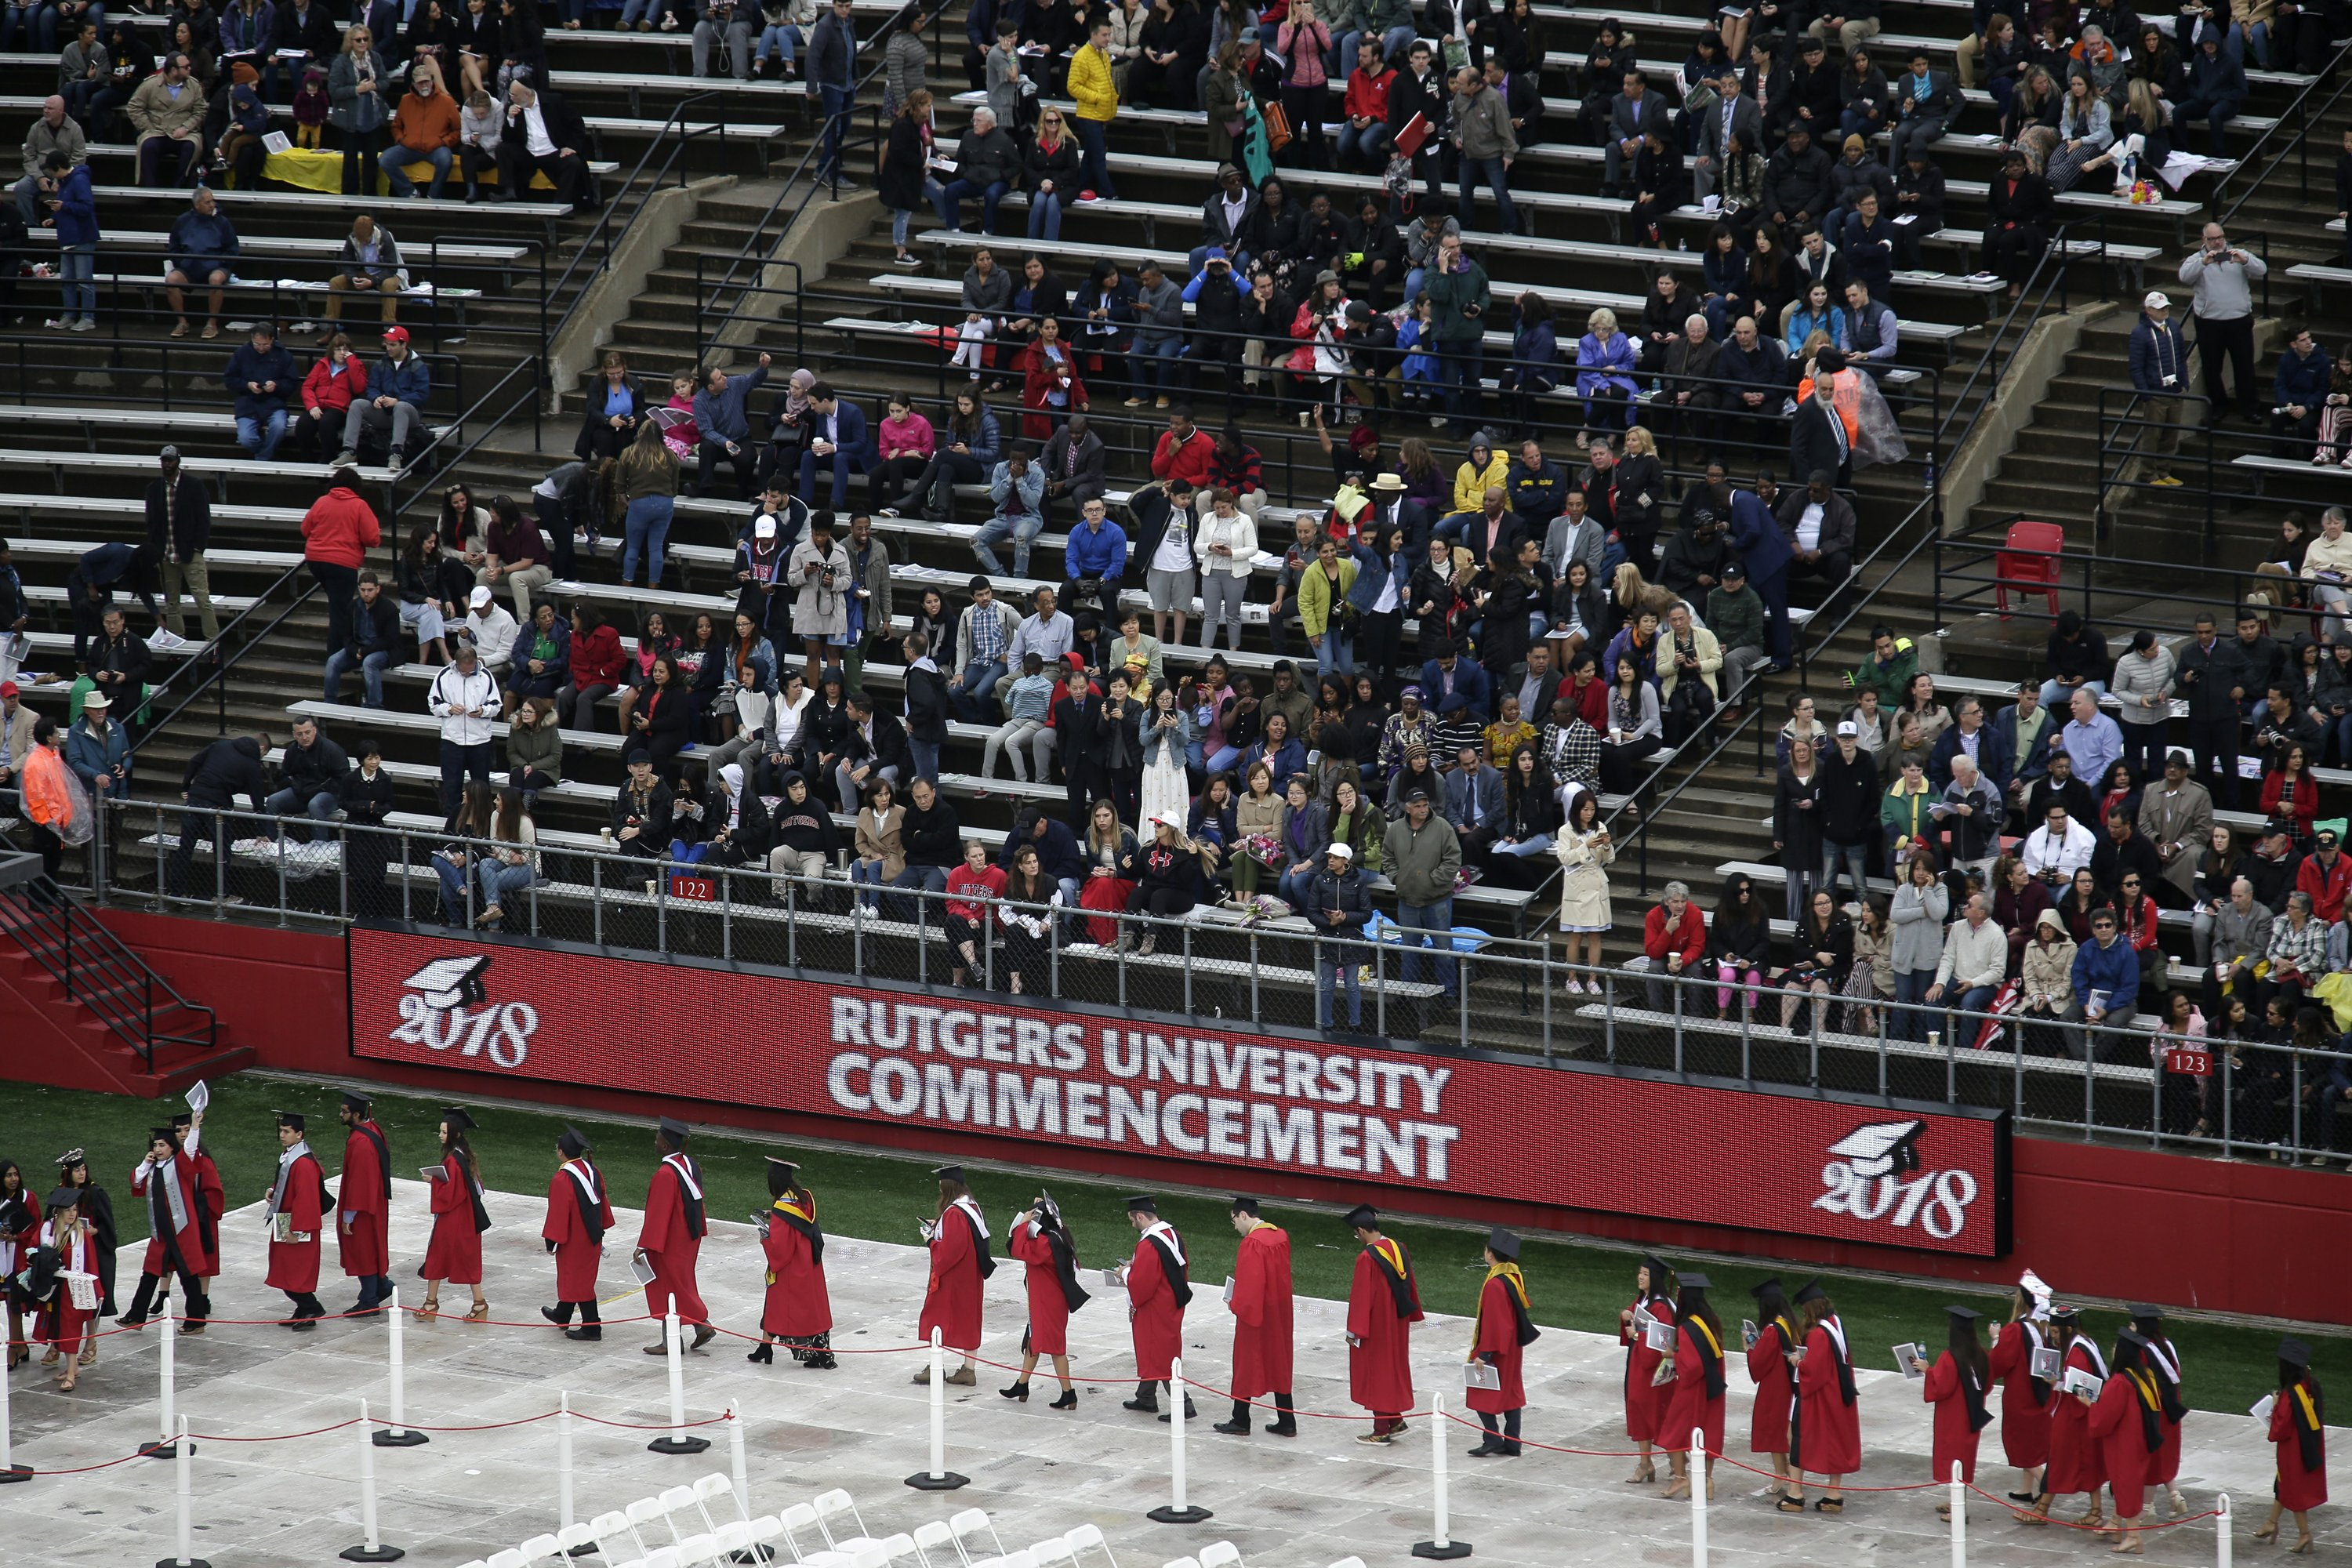 Thousands receive diplomas at Rutgers graduation ceremony